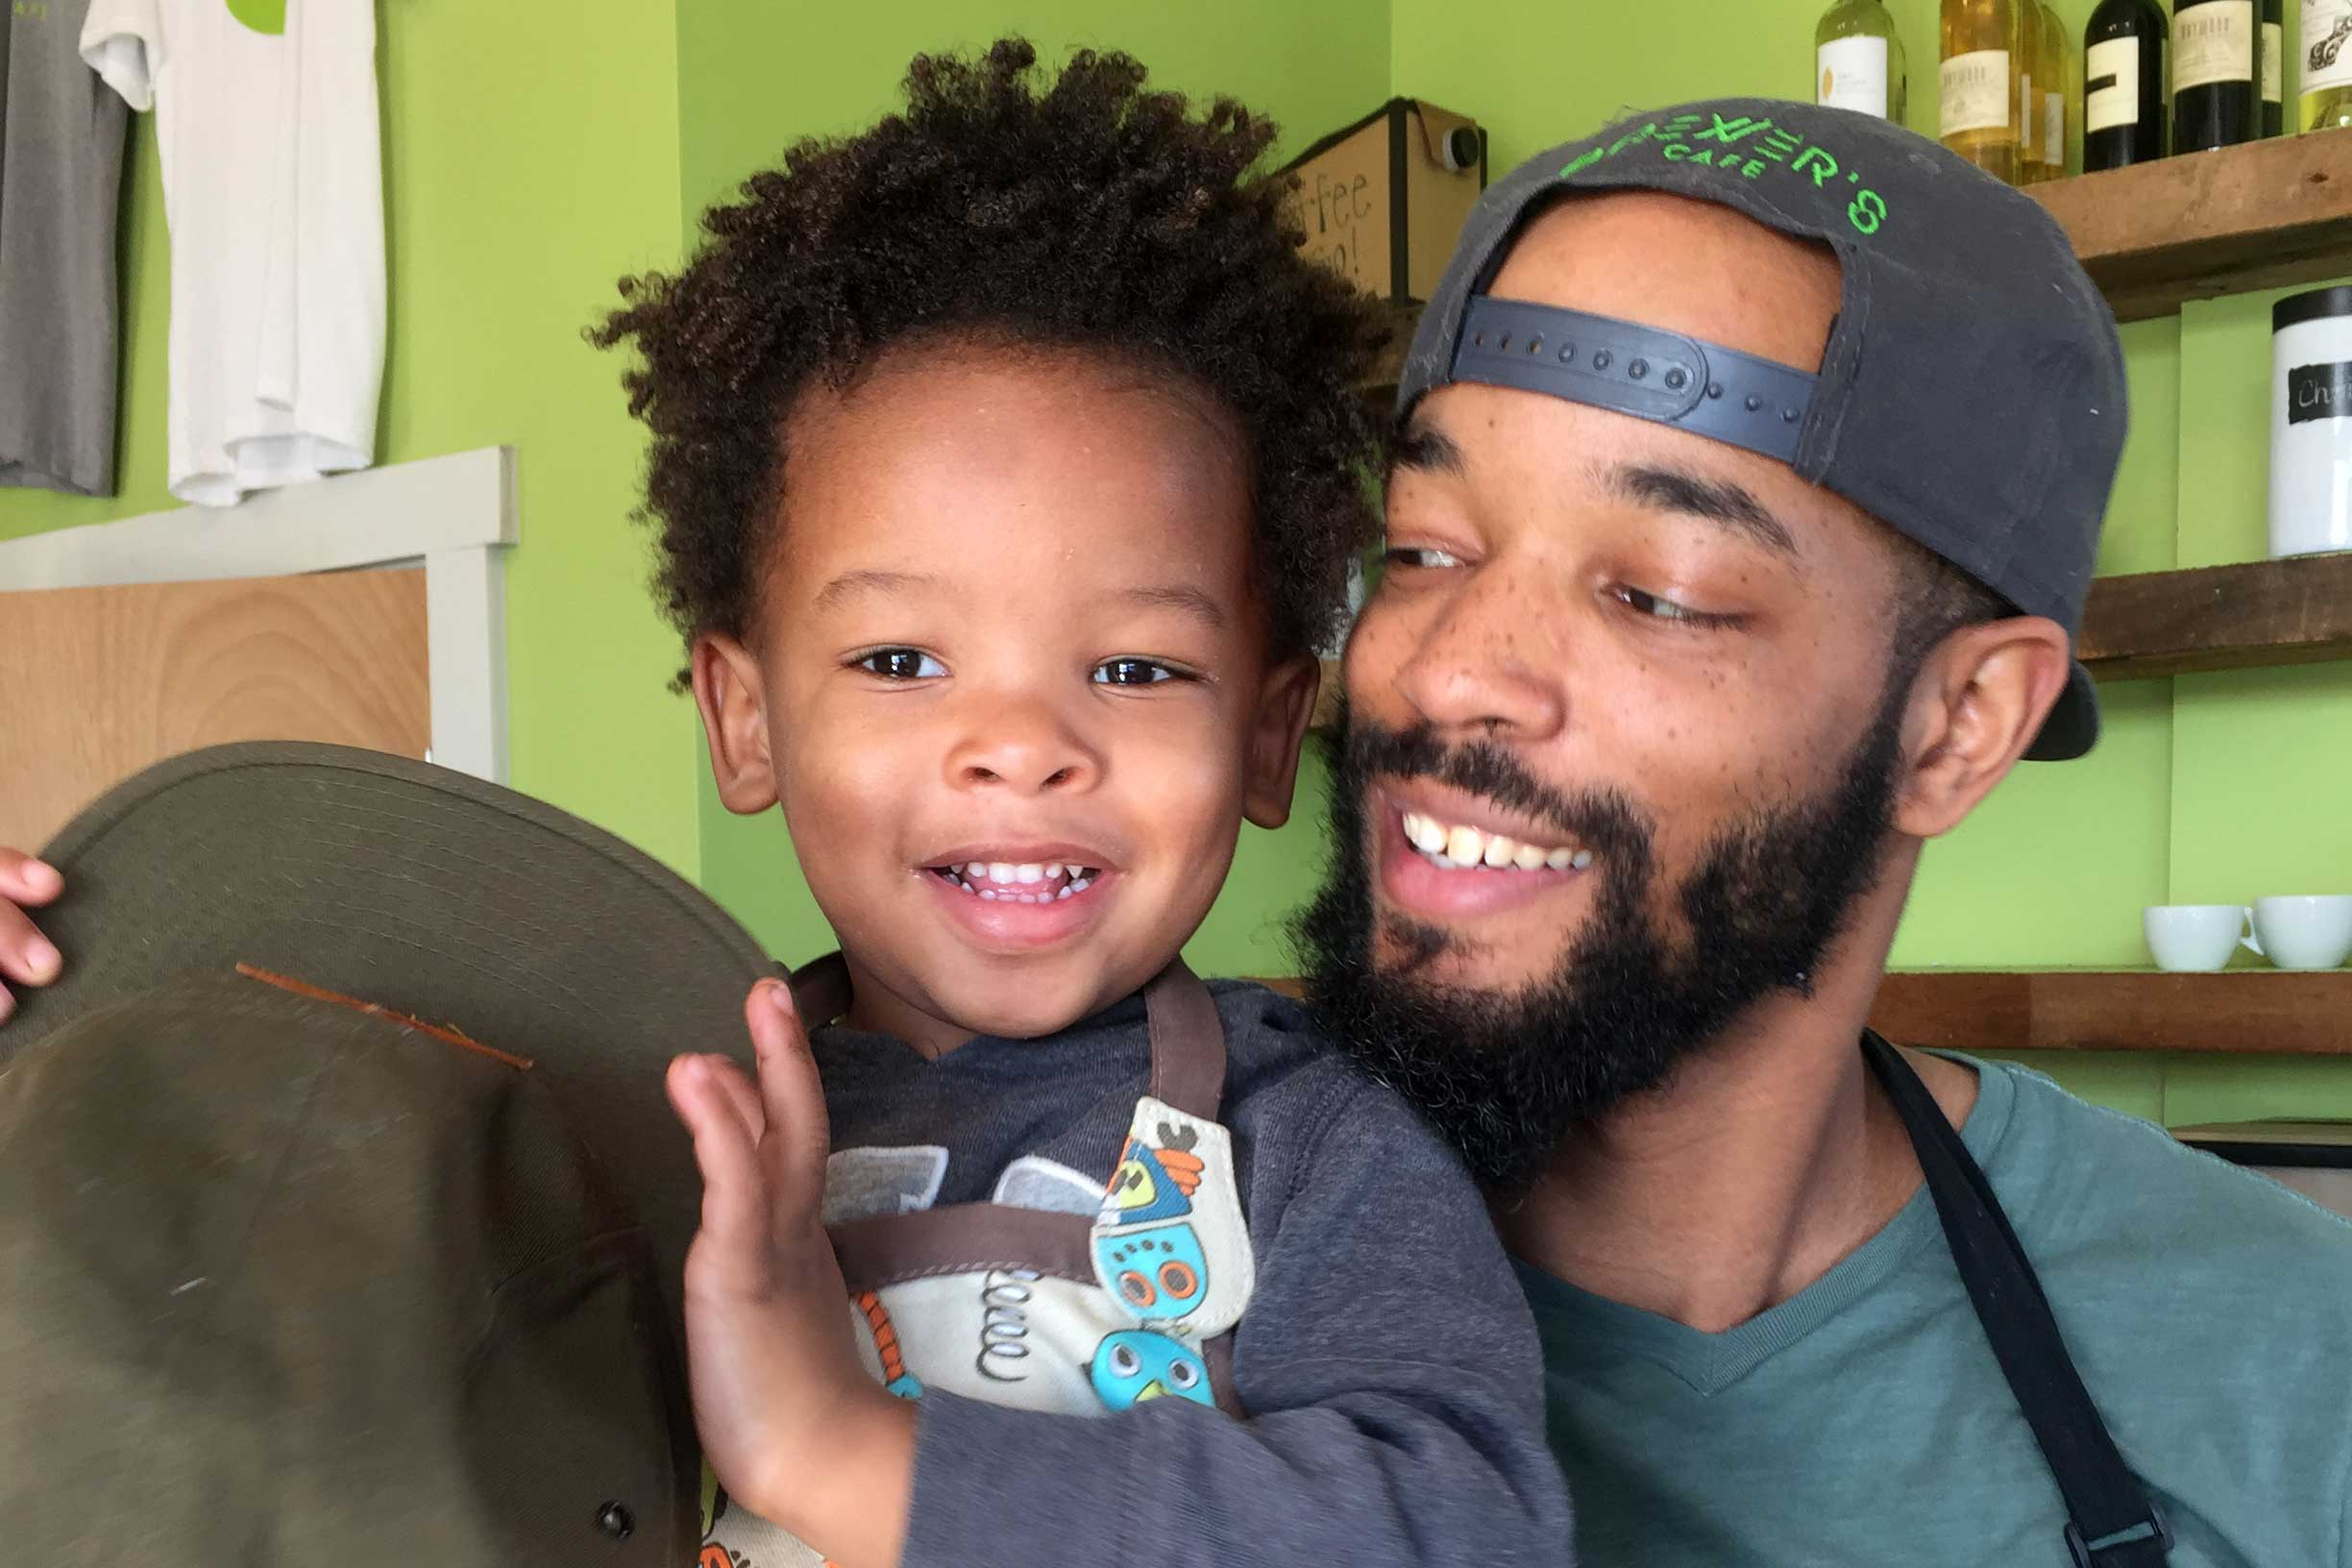 Richmond native A.J. Brewer, pictured here with his 3-year-old son Parker, opened Brewer's Café in 2015. (Photo curtsey of A.J. Brewer.)